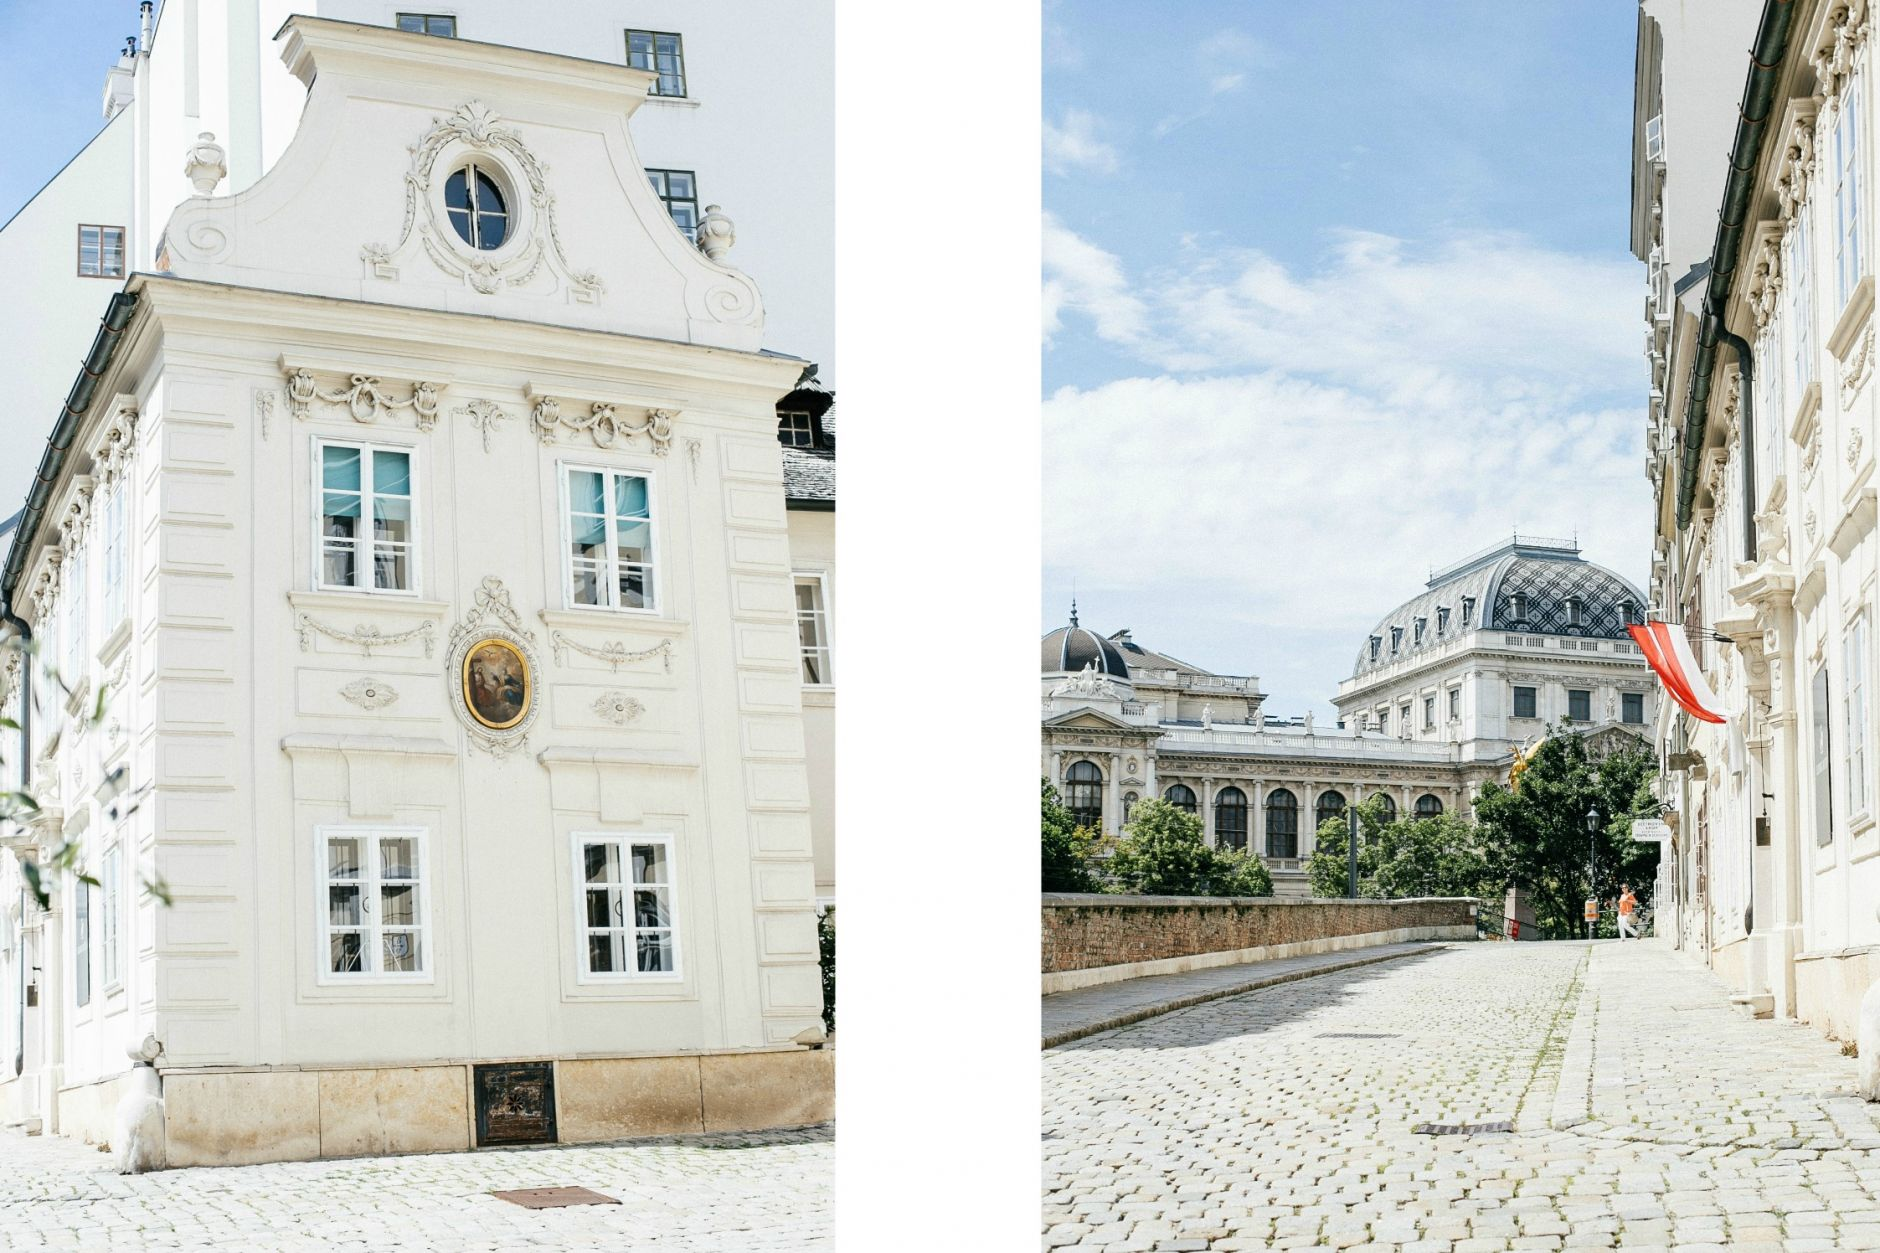 airbnb-hosting-vienna-austria-appartments-for-rent-disicouture-108